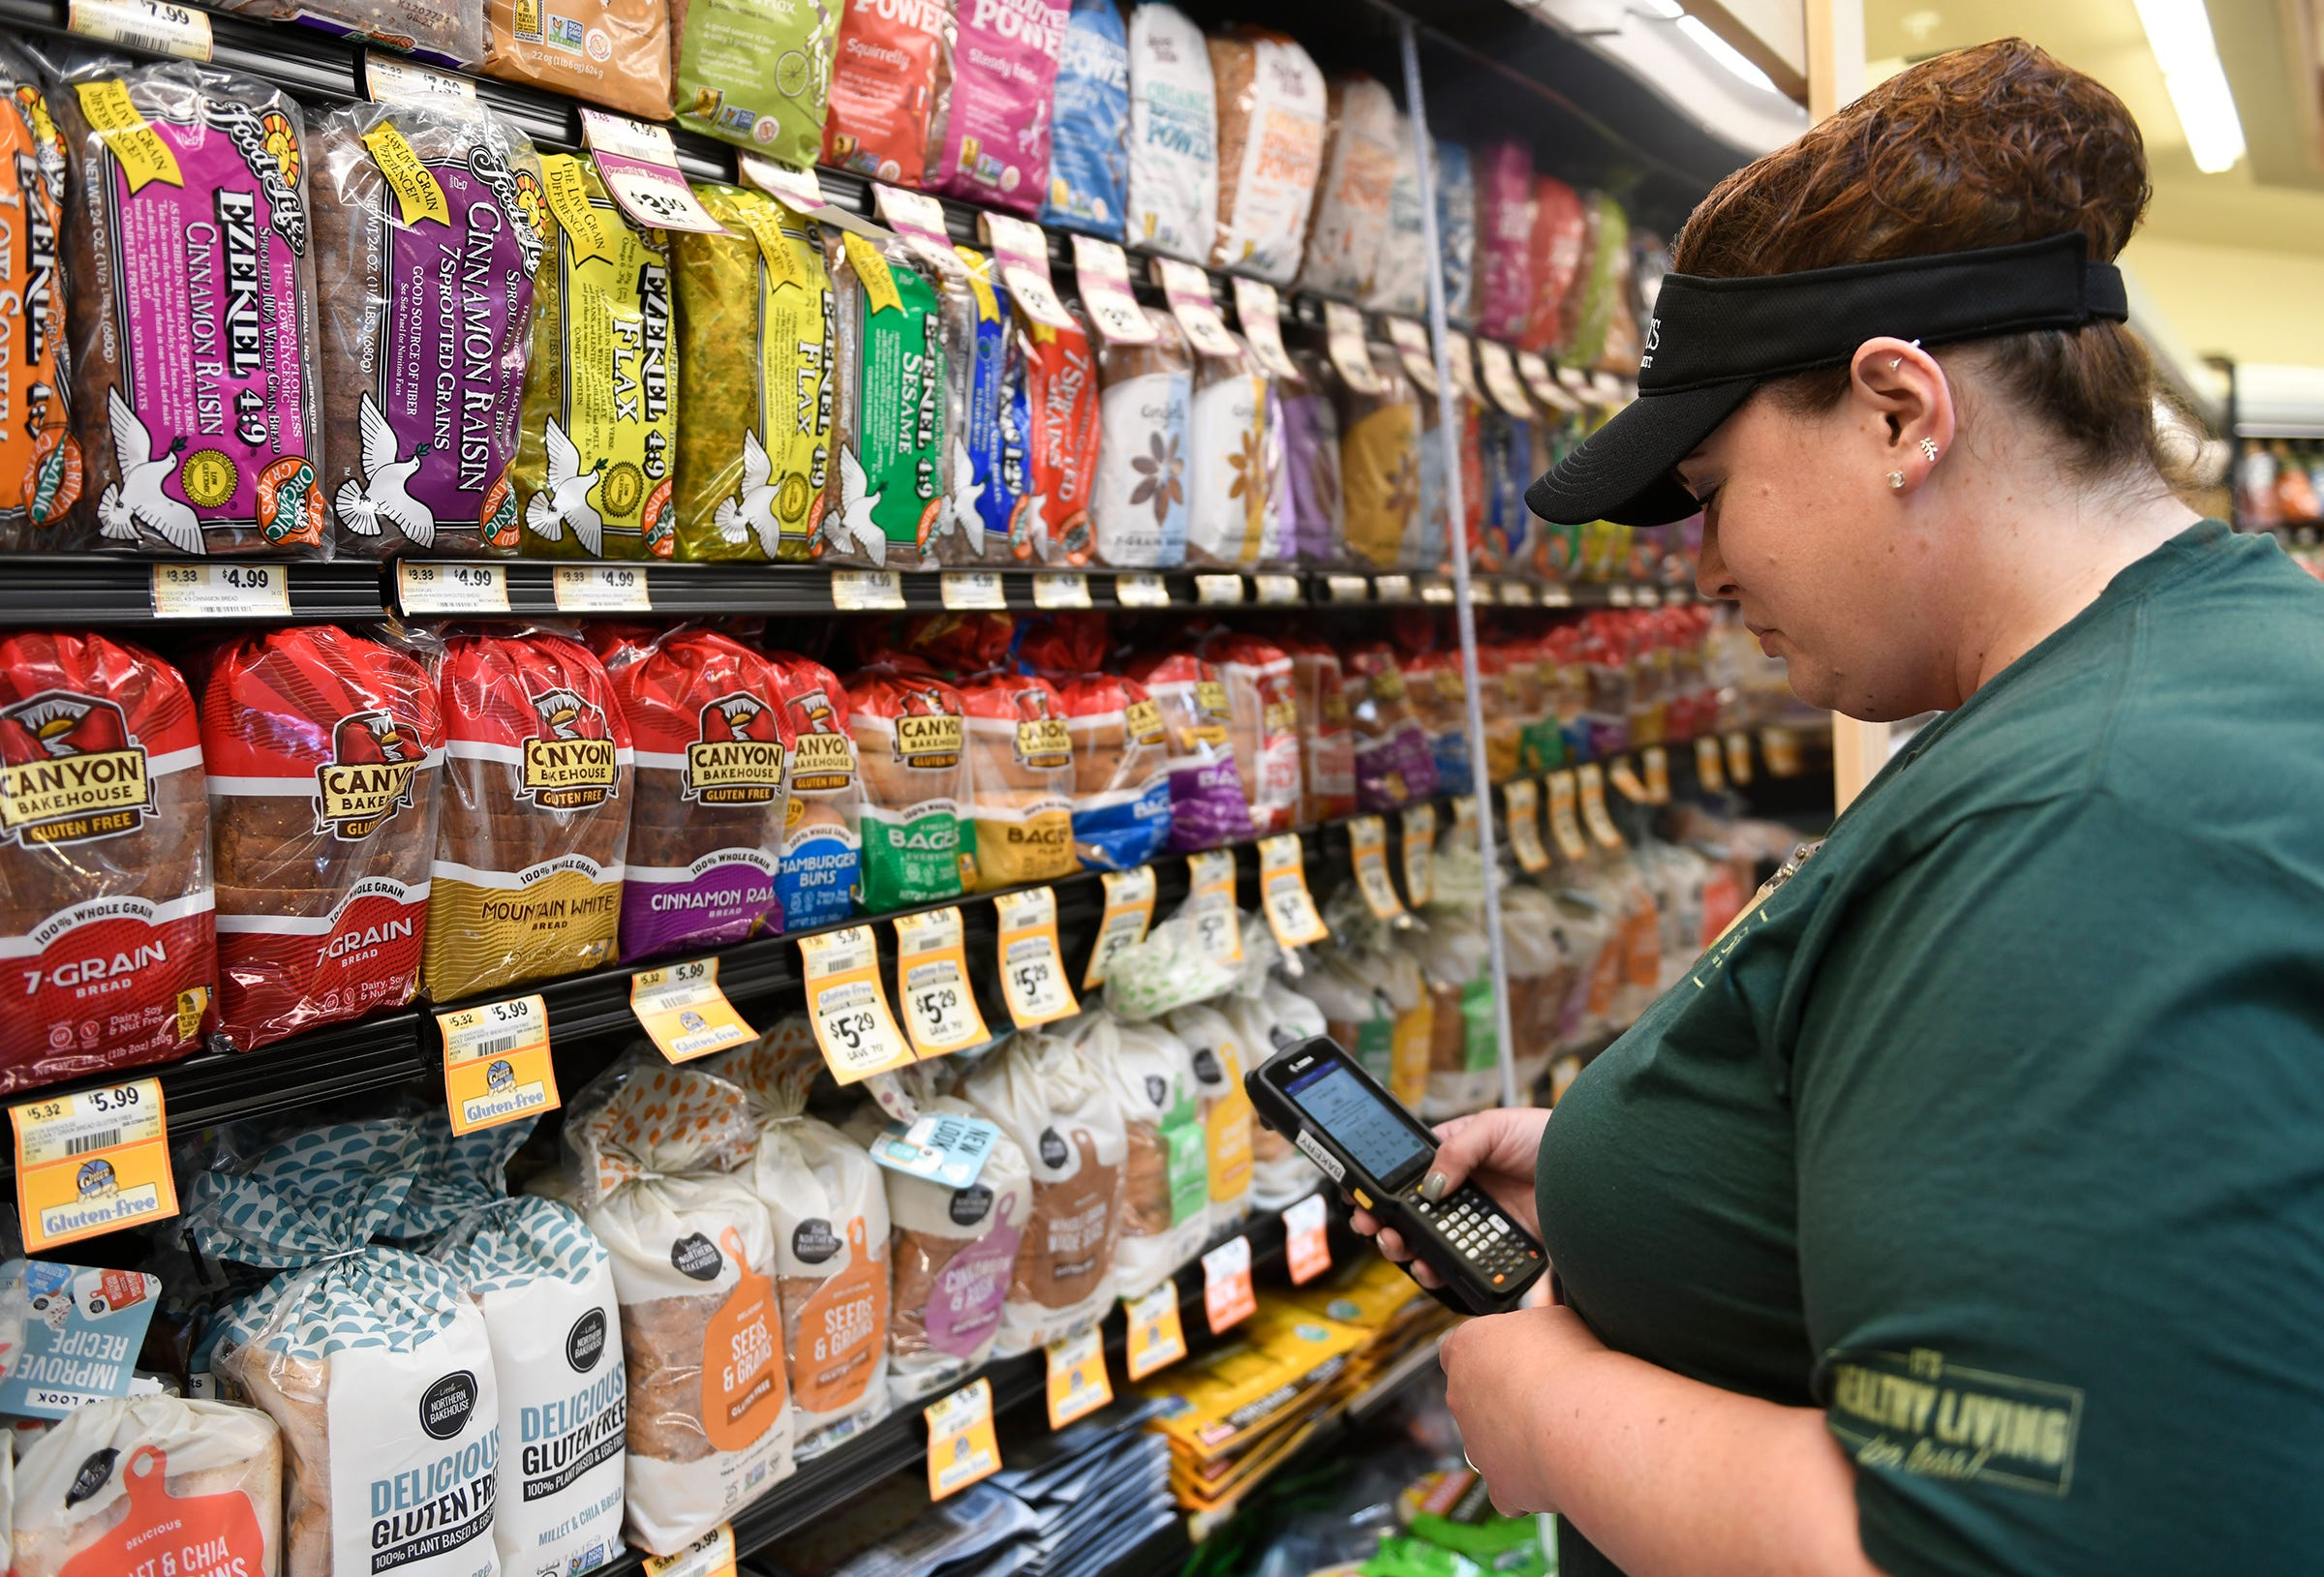 WATCH: Take a sneak peek inside NJ's first Sprouts Farmers Market